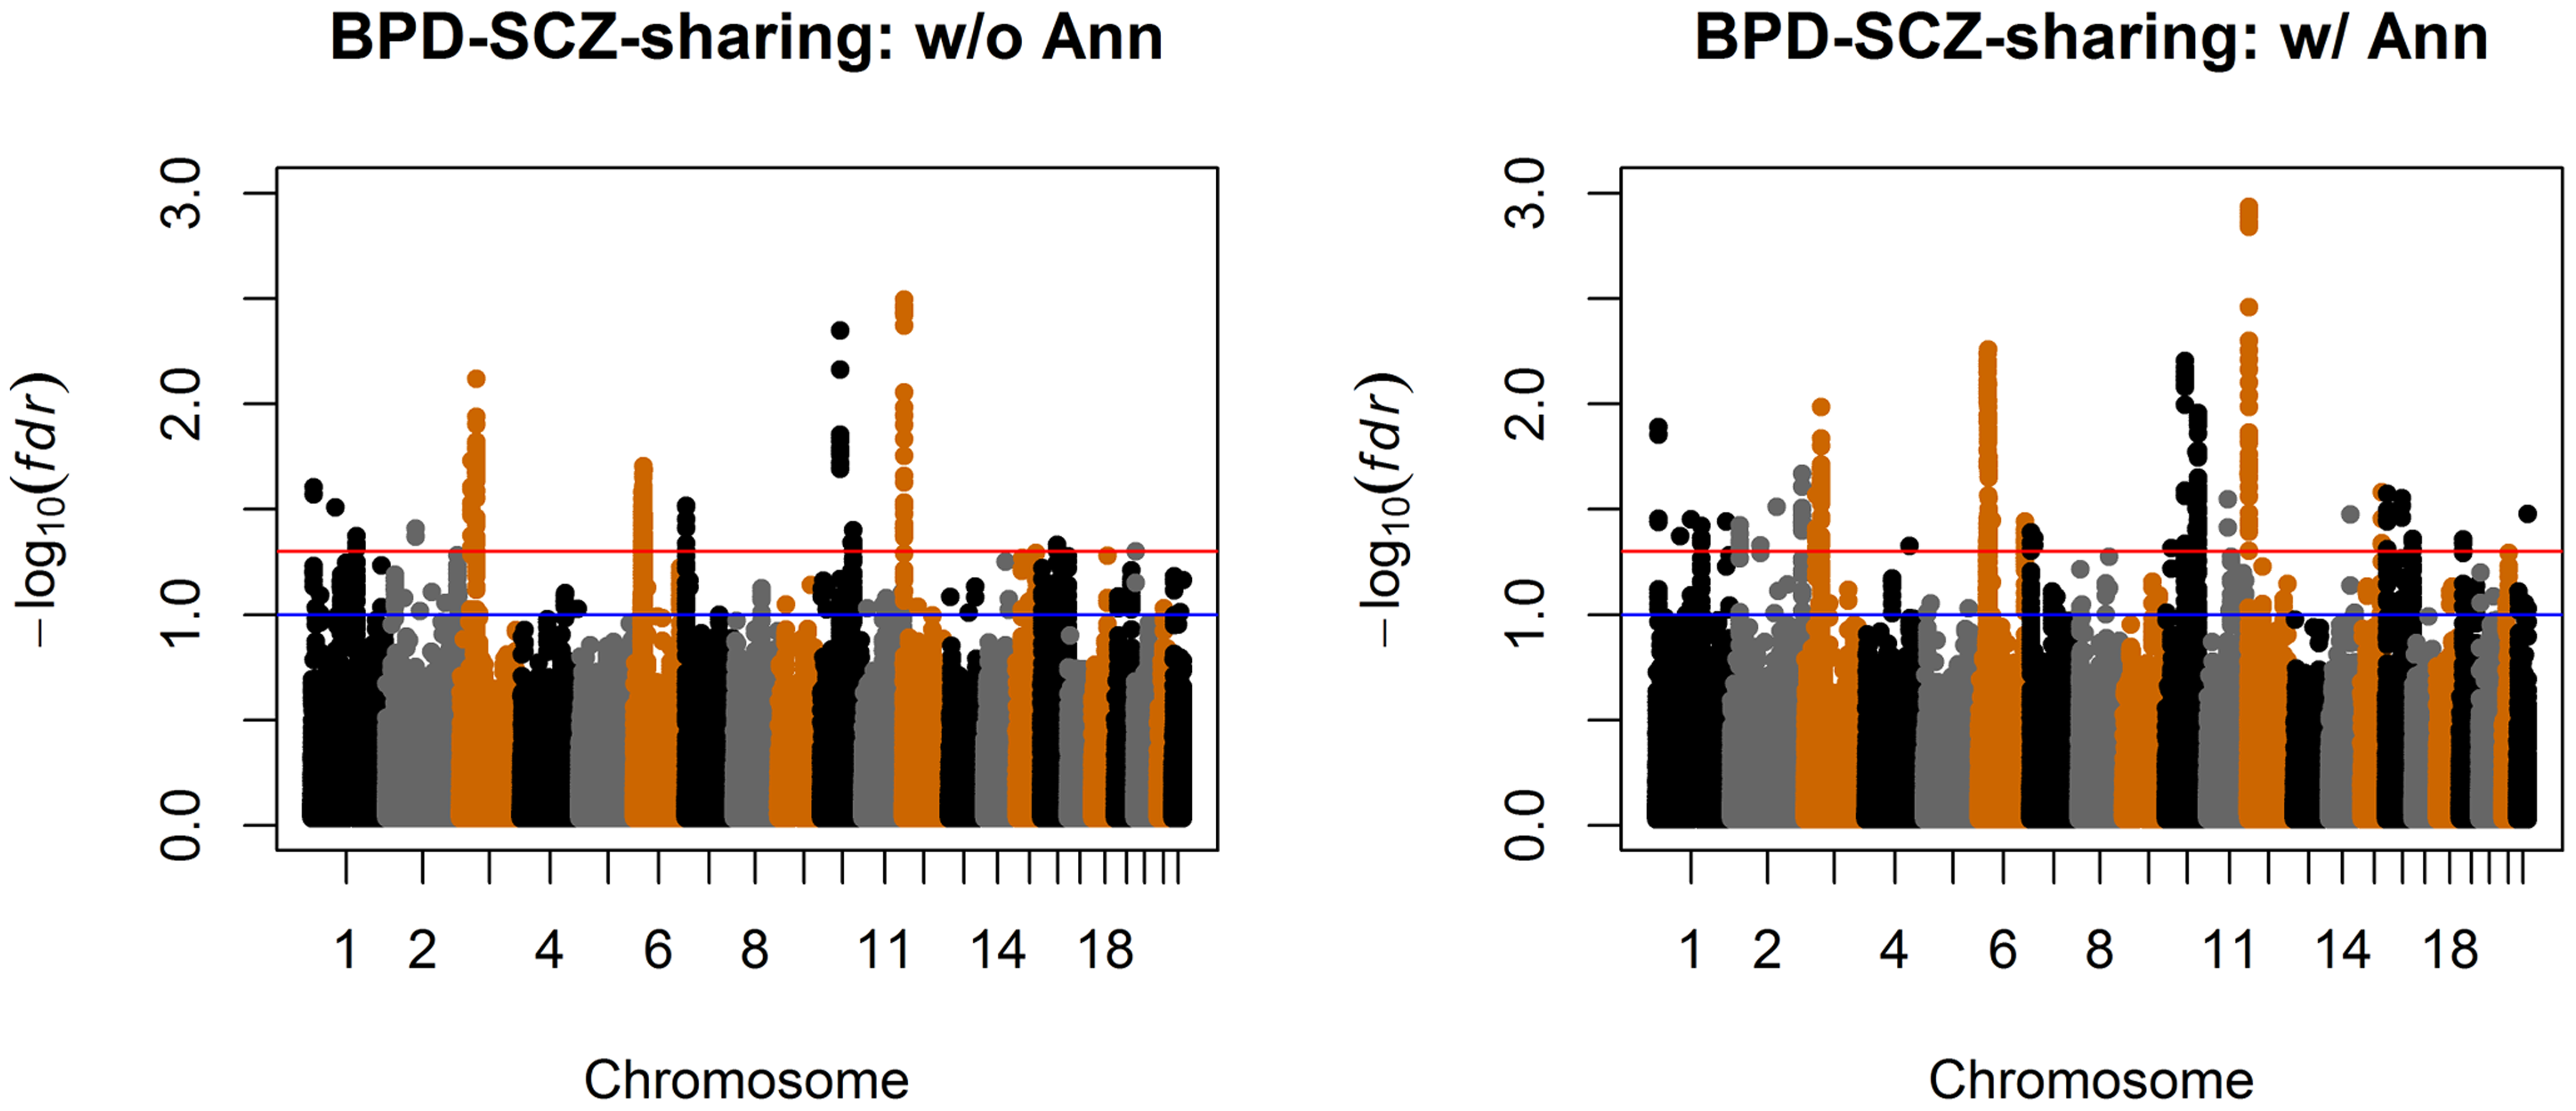 Manhattan plots of local false discovery rates  and  (<em class=&quot;ref&quot;>Equations (11</em>) and (12)) for detecting BPD-SCZ-sharing SNPs.